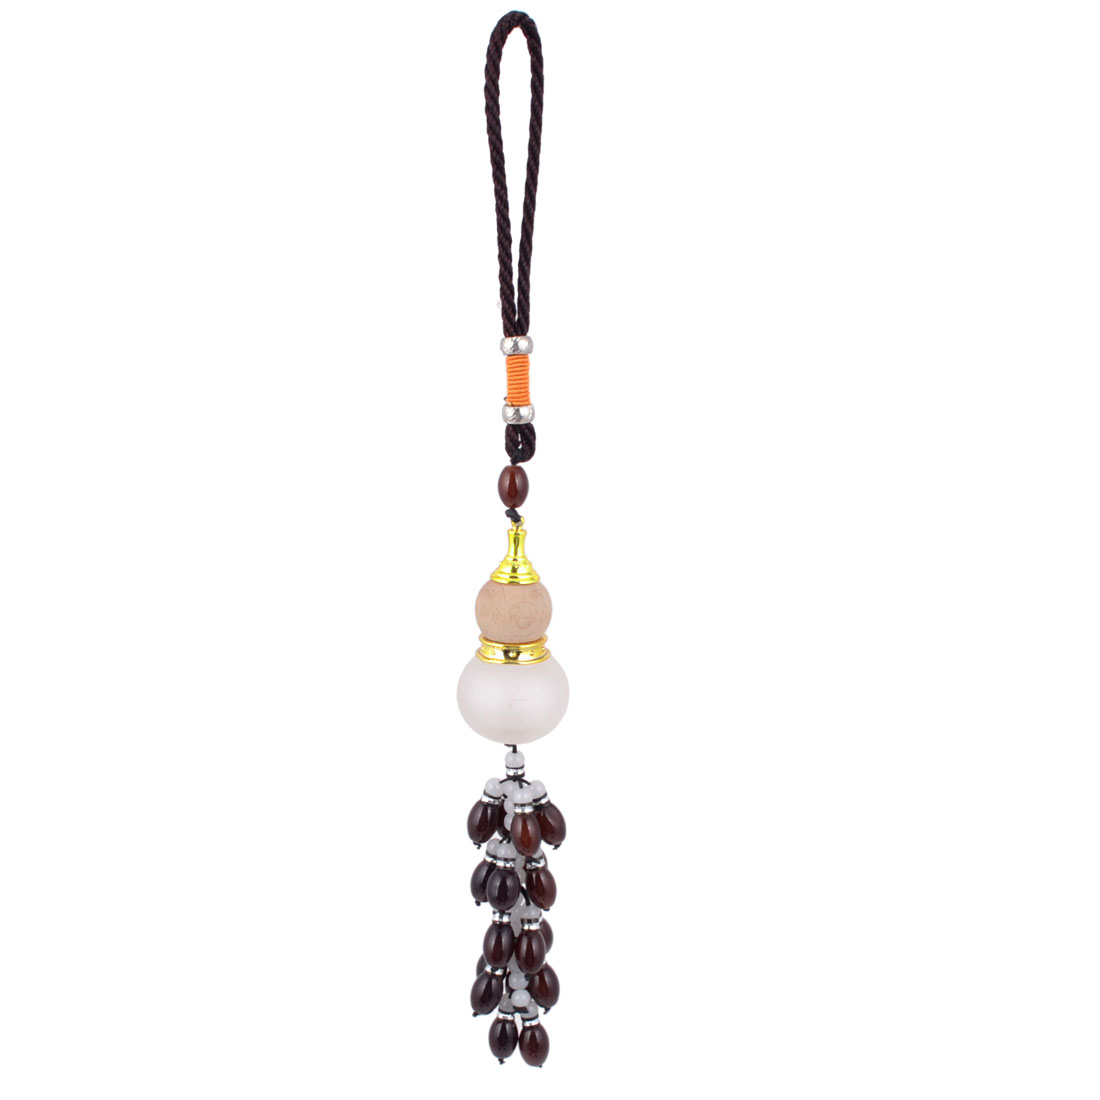 Car Calabash Shaped Perfume Bottle Beads Pendant Hanging Decoration Brown